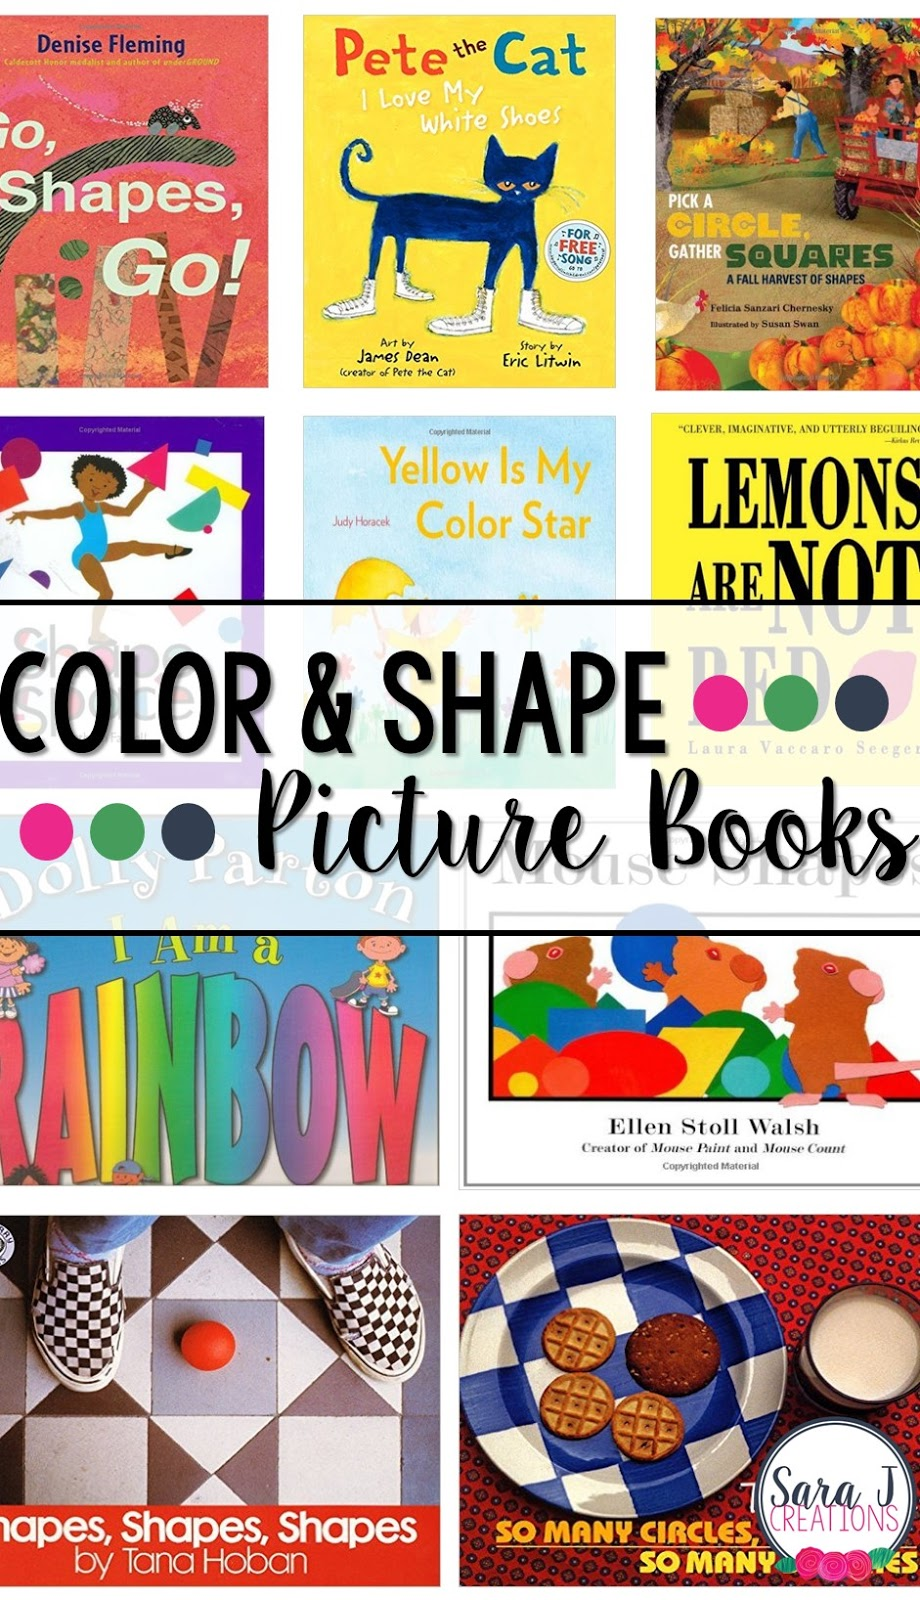 Quick reference to some great color and shape picture books for kids!